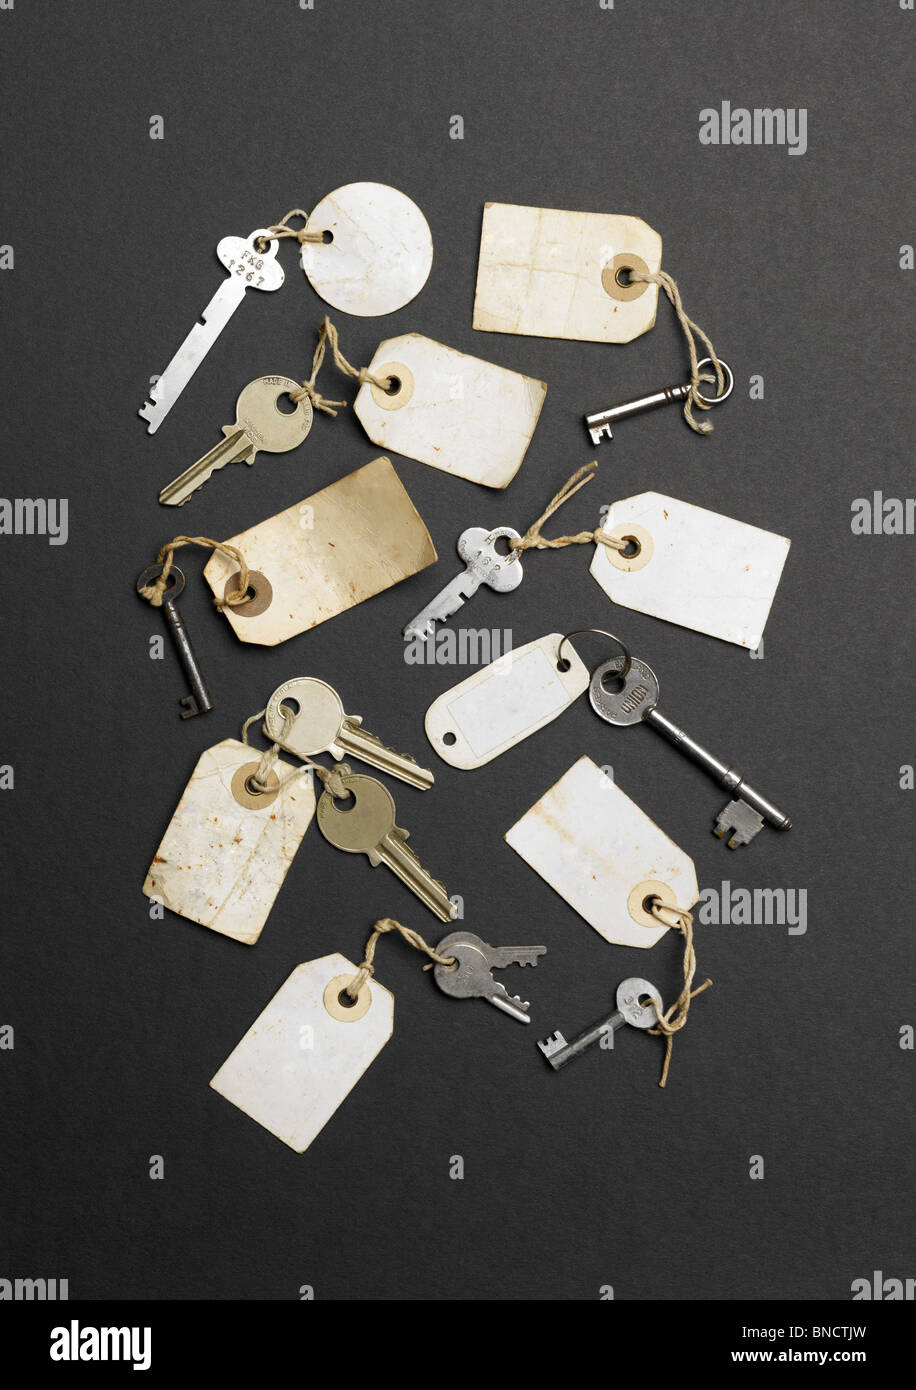 Old keys with labels without writing on them Stock Photo